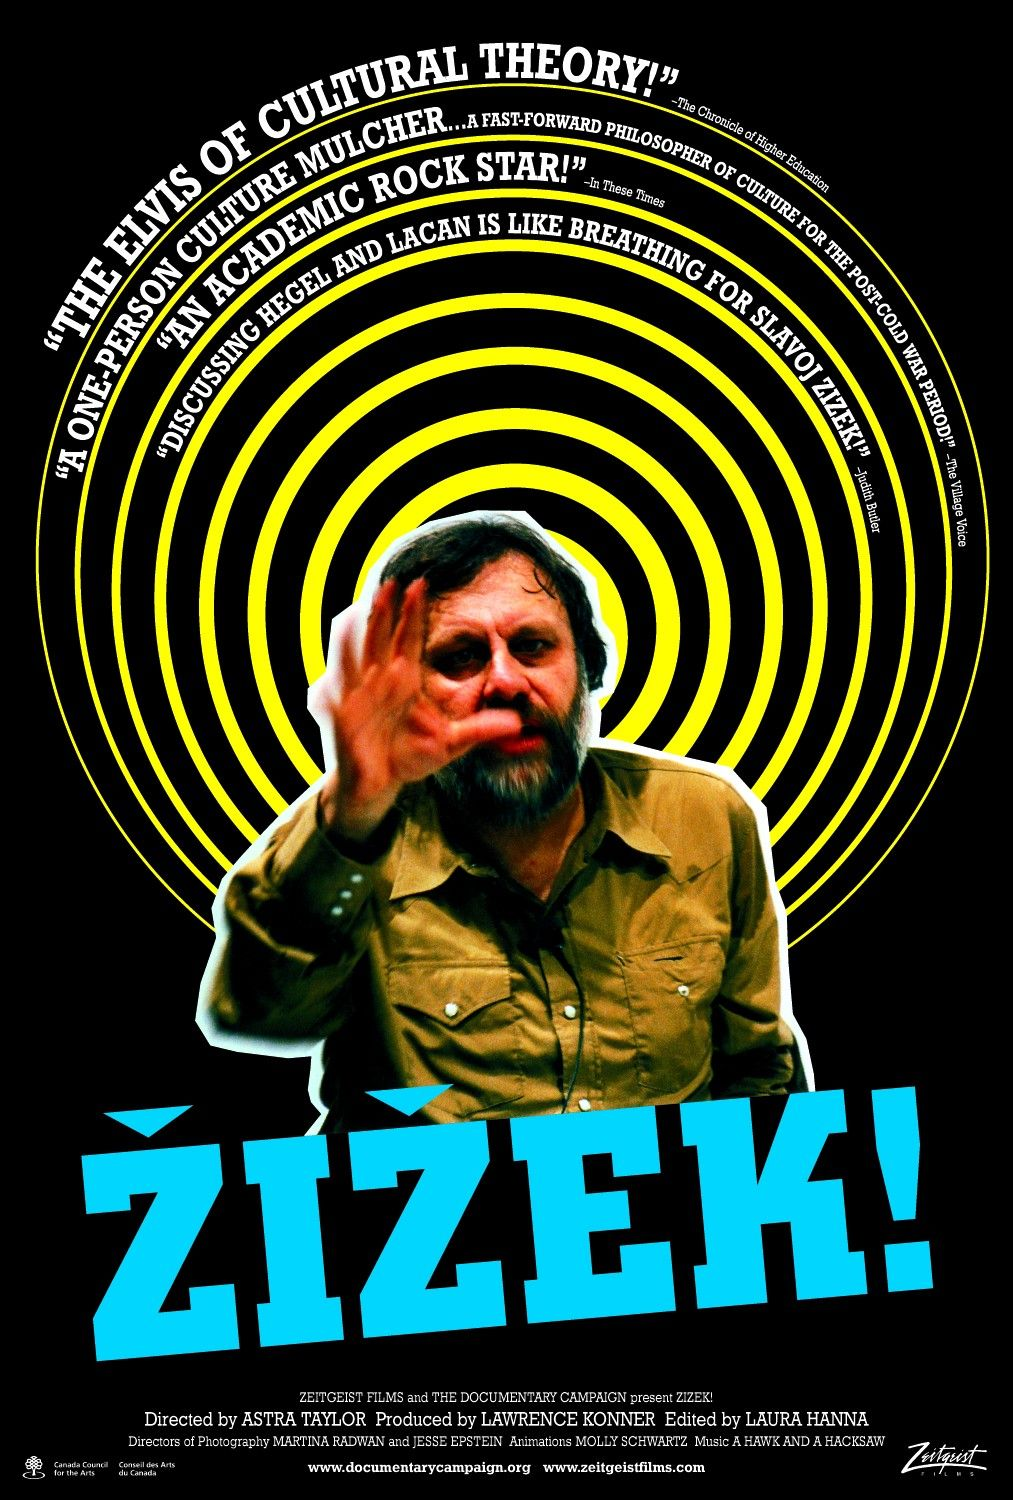 Zizek documentary